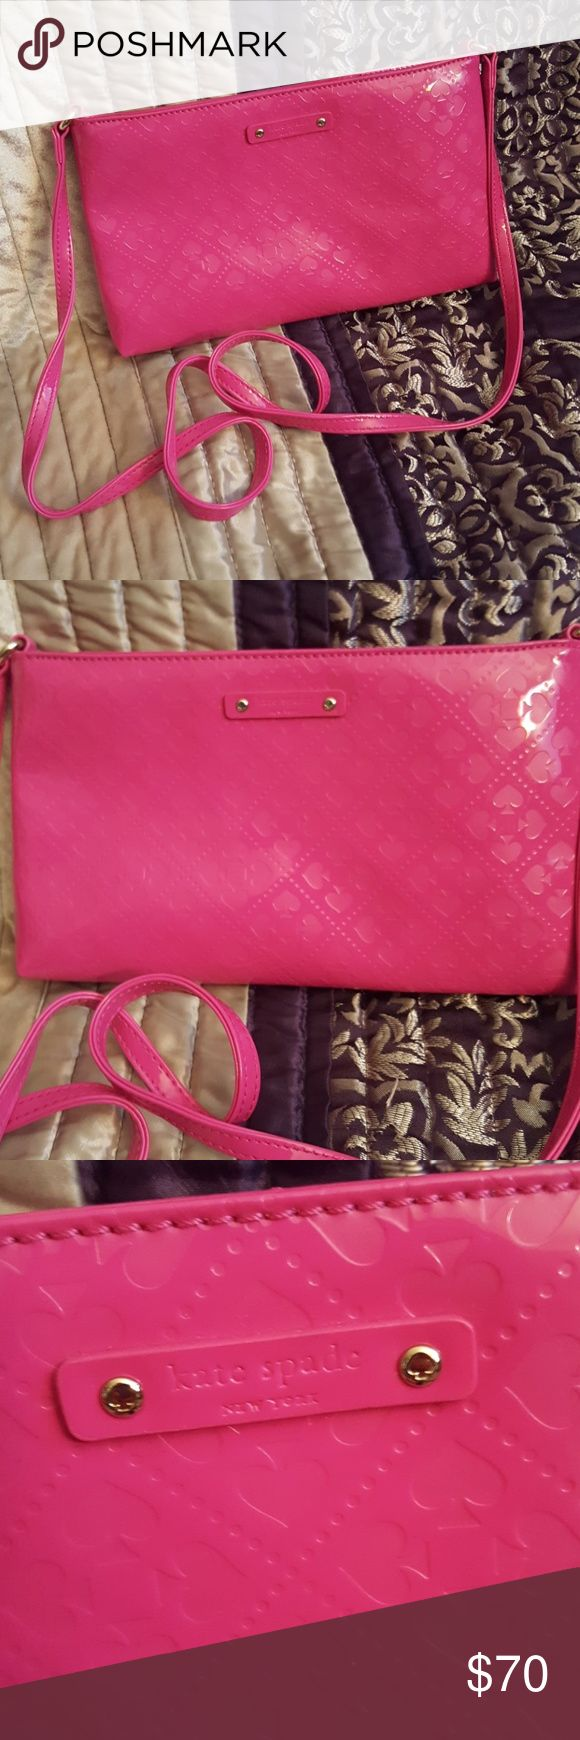 "NWOT Kate Spade Pink Crossbody Purse NWOT Kate Spade Pink Crossbody Purse. Brand new, never worn. Cute pink patent leather leather crossbody bag. Has a spade pattern and zippered closure. Interior has 4 credit card like slip pockets. Gold hardware. DIMENSIONS: 10"" L x 1.25"" W x 6"" H, strap drop about 24.5"". Check out my other kate spade purses, I have another one just like this in red with a bow on it! Check out my other kate spade bags and purses for sale!! kate spade Bags Crossbody Bags"